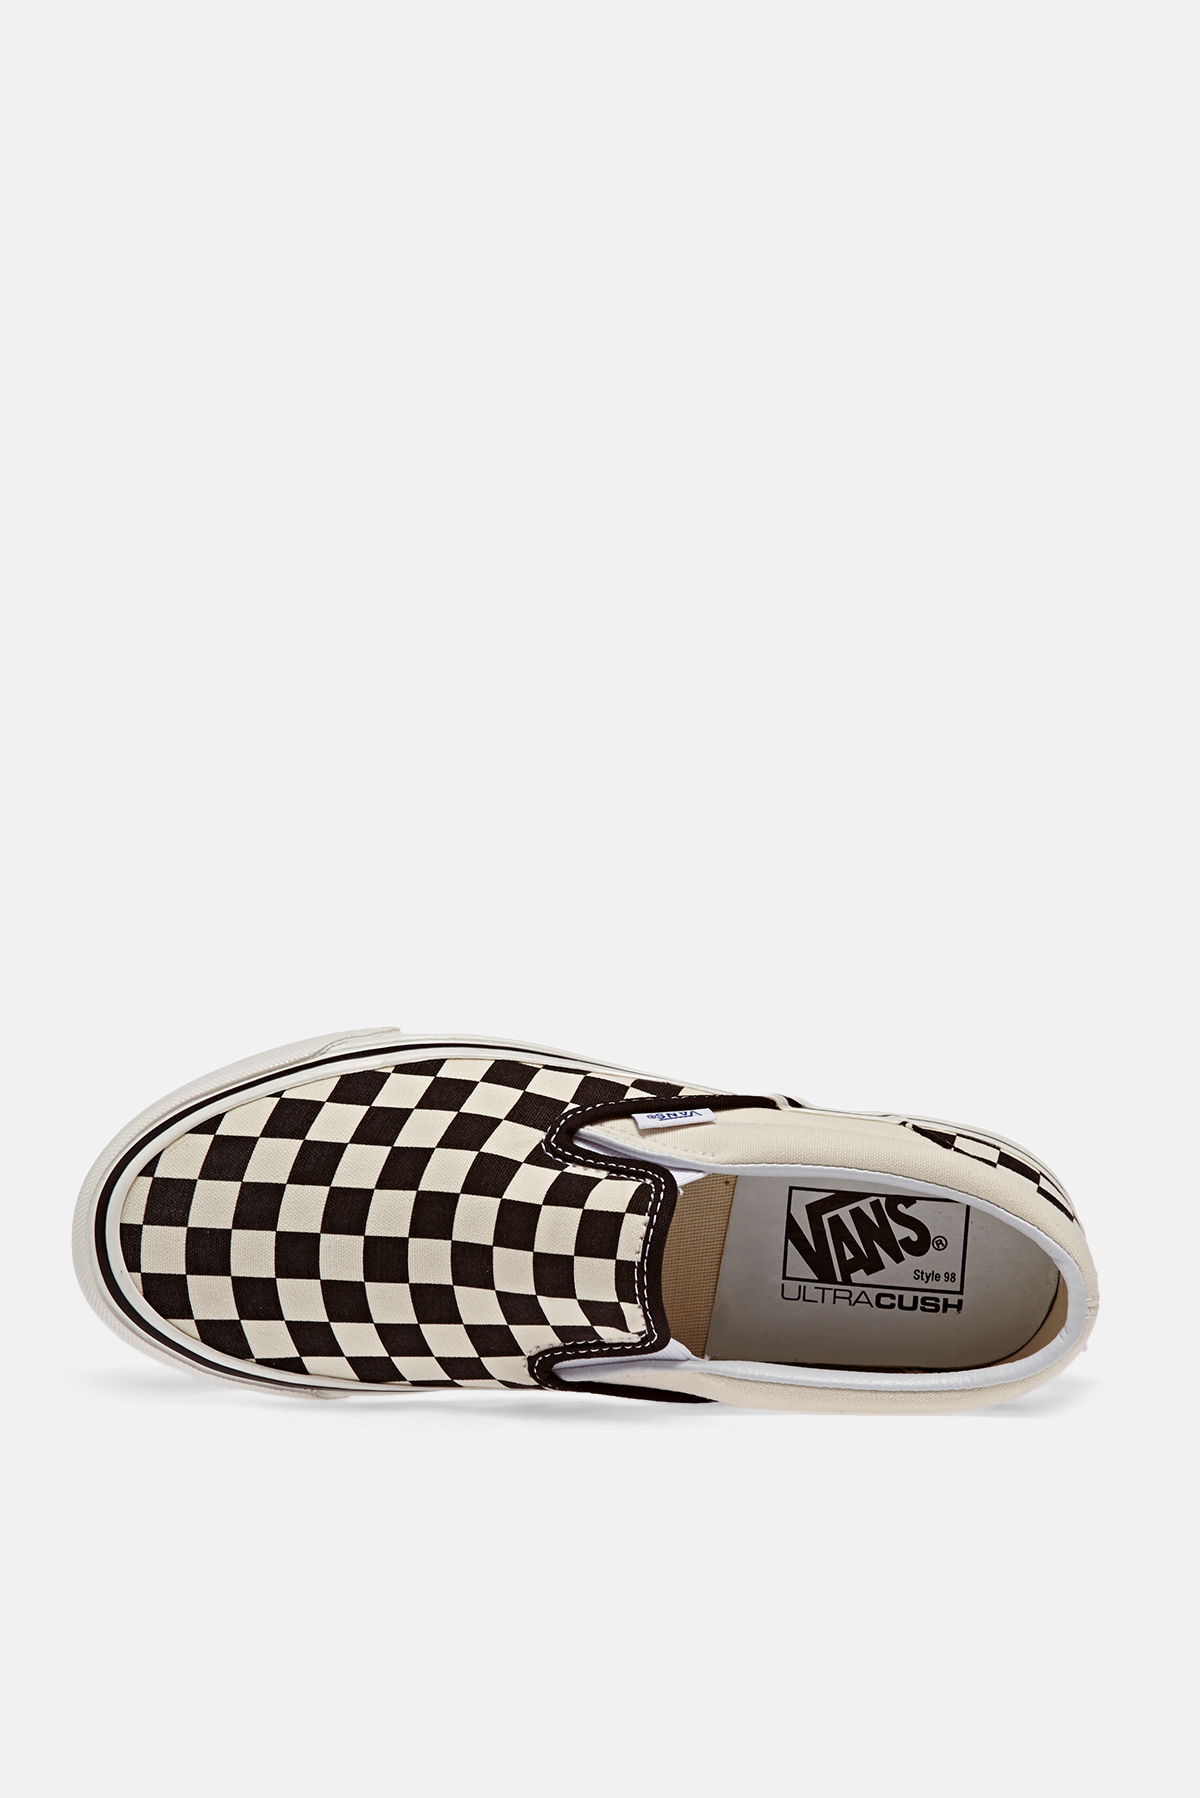 Vans Anaheim Classic Slip On 98 Shoes available from Priory